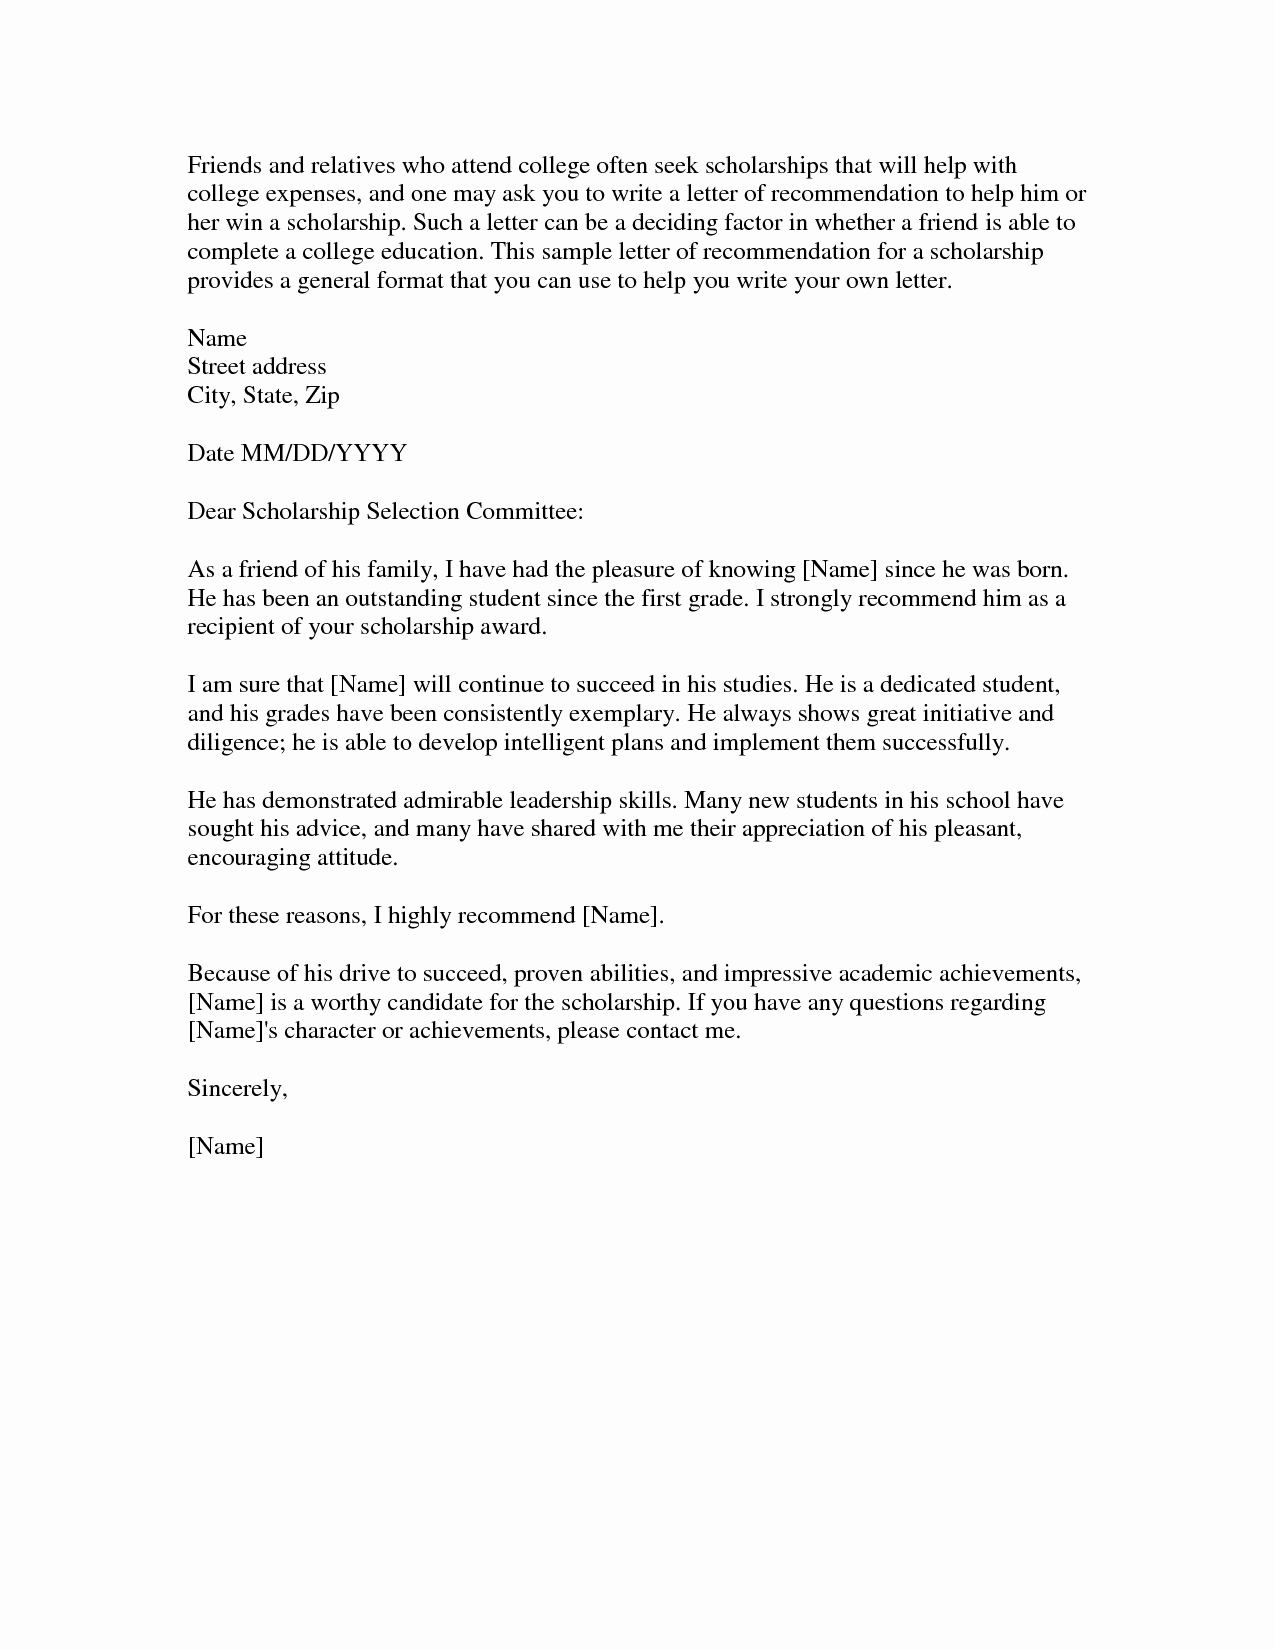 Scholarship Recommendation Letter Examples Inspirational Download Scholarship Re Mendation Letter Sample Word